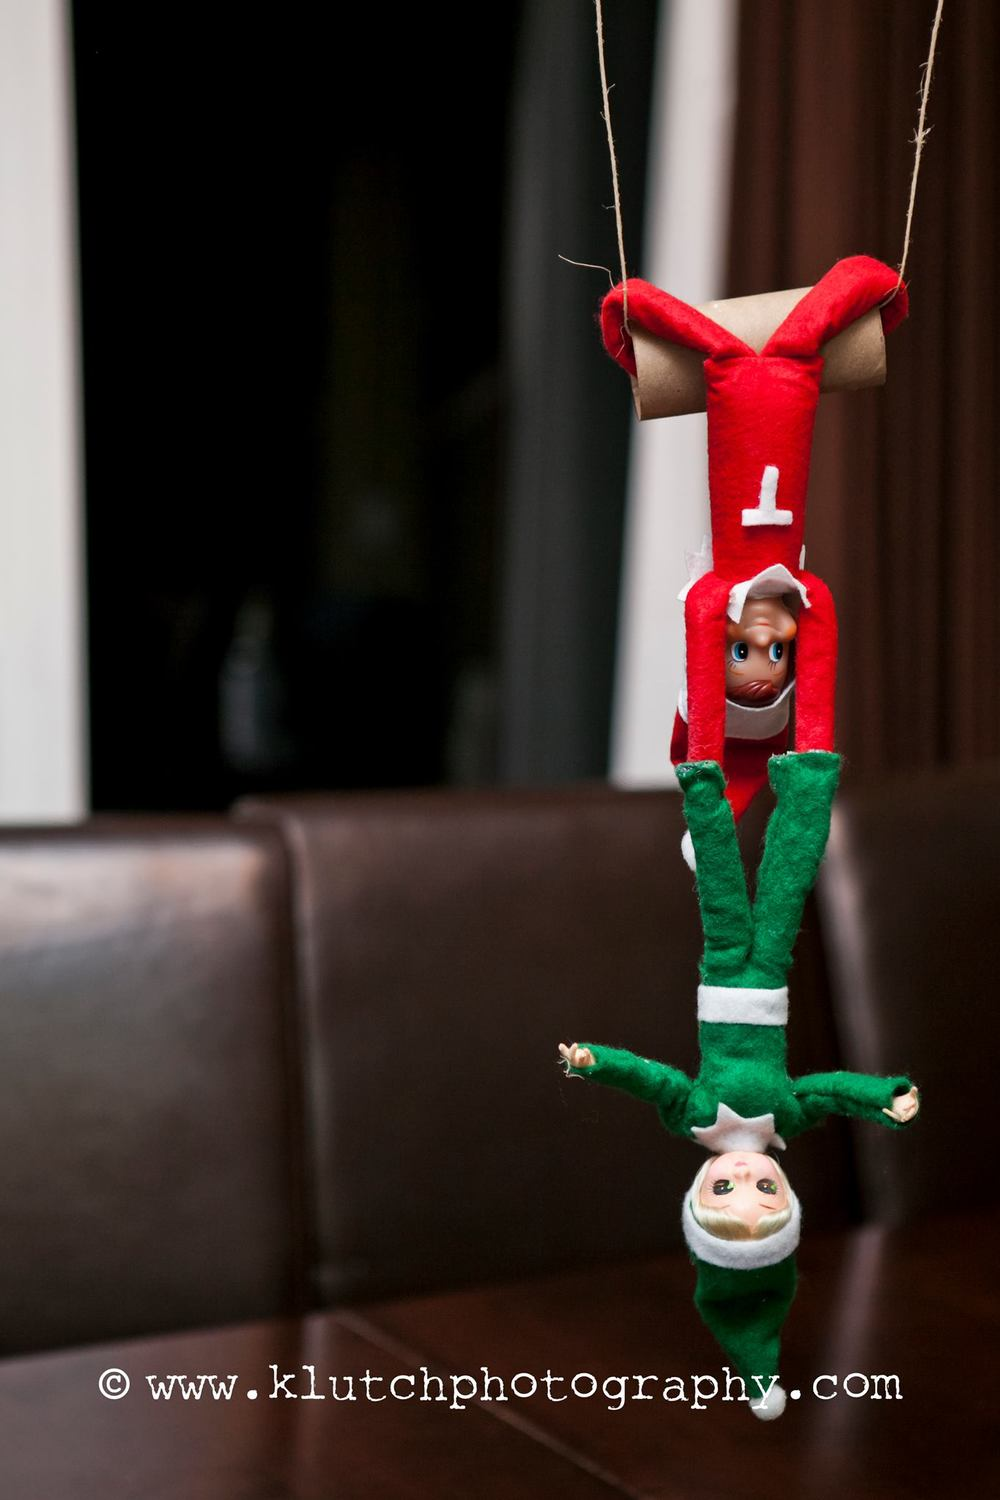 Klutch Photography, family photographer, elf on the shelf, vancouver family photographer, whiterock family photographer, lifeunscripted photographer, lifestlye photographer h.jpg